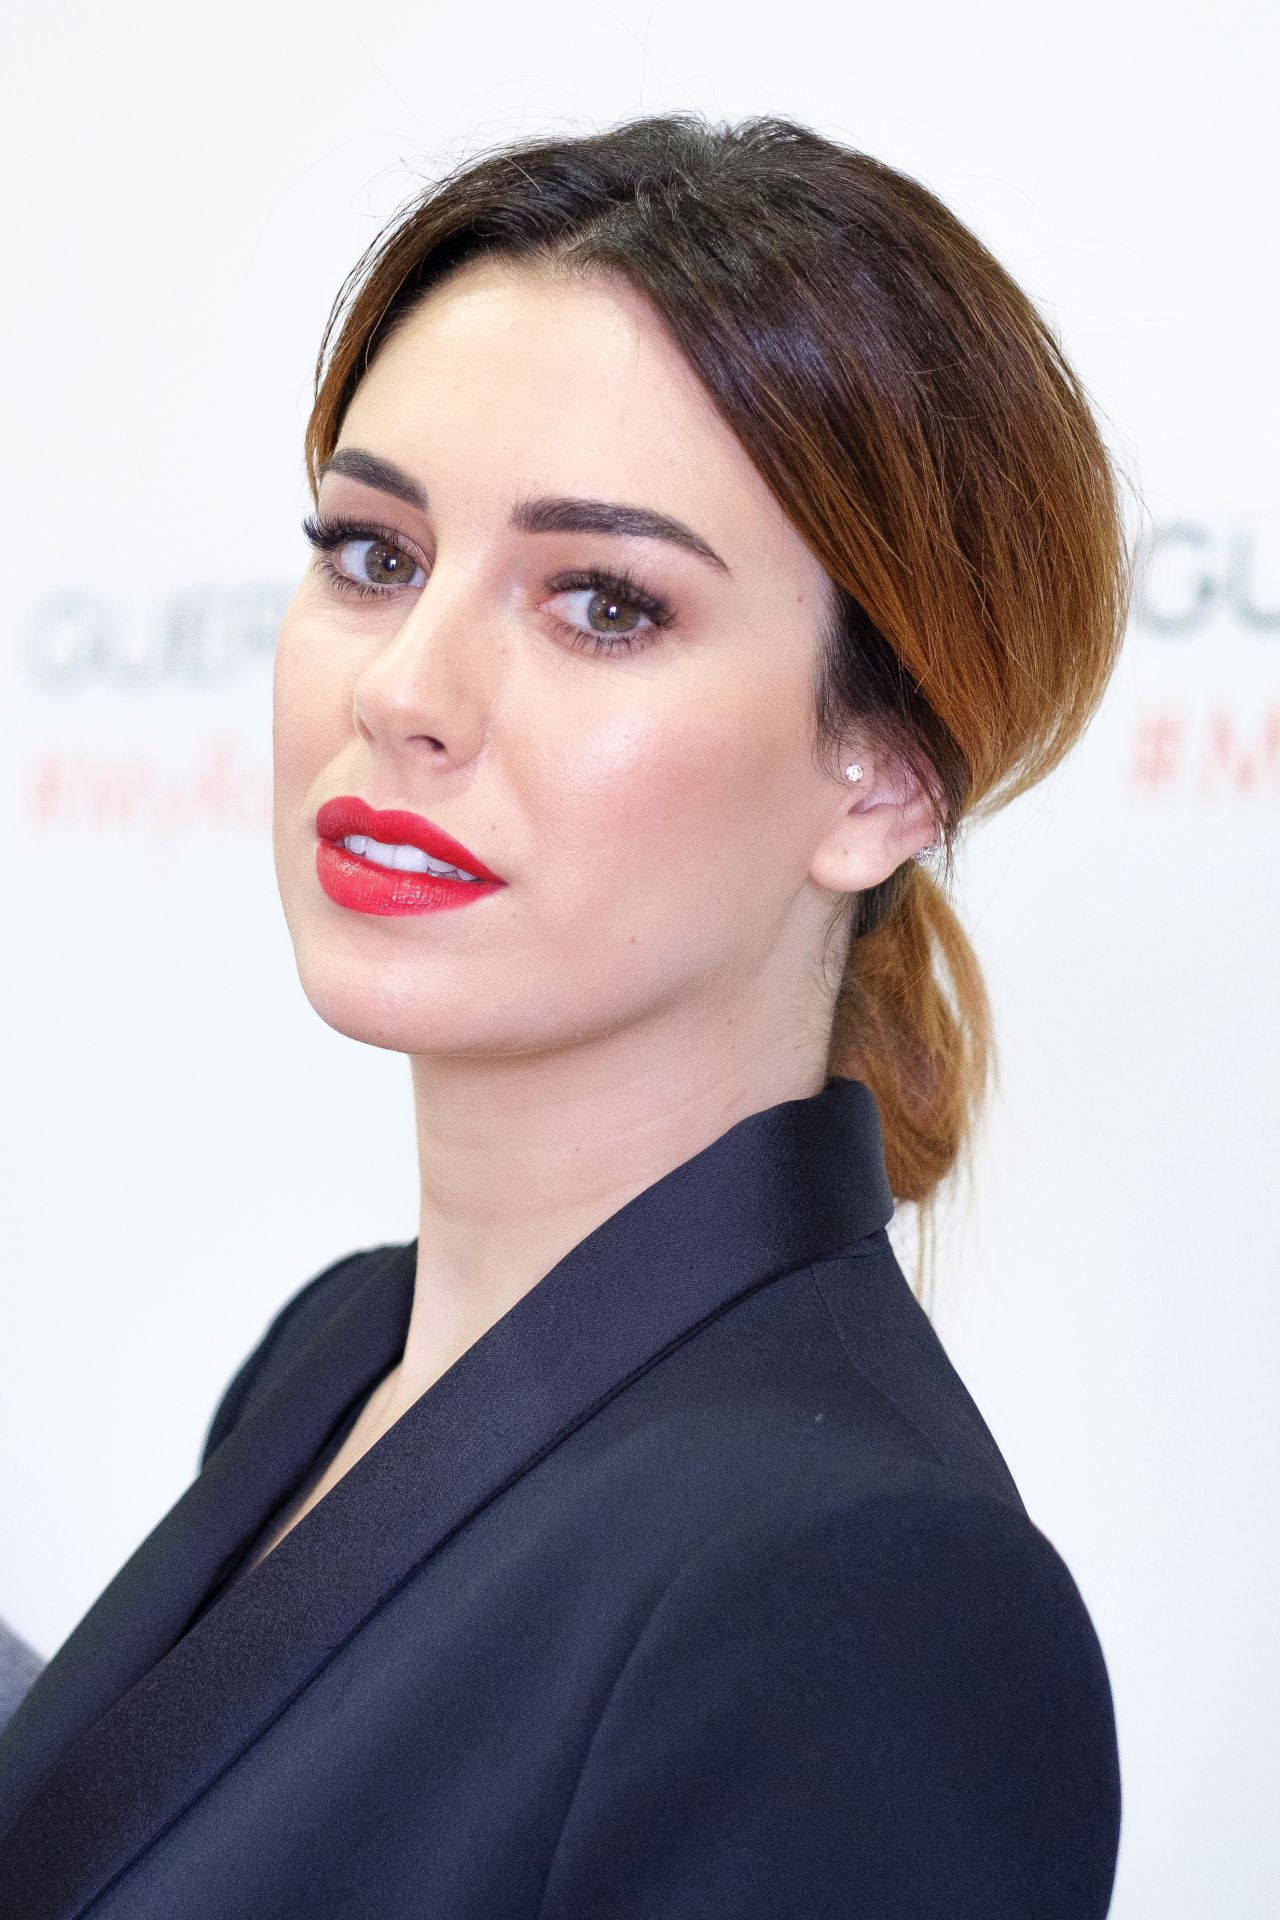 Cleavage Blanca Suarez nude (57 photos), Pussy, Paparazzi, Twitter, cameltoe 2017